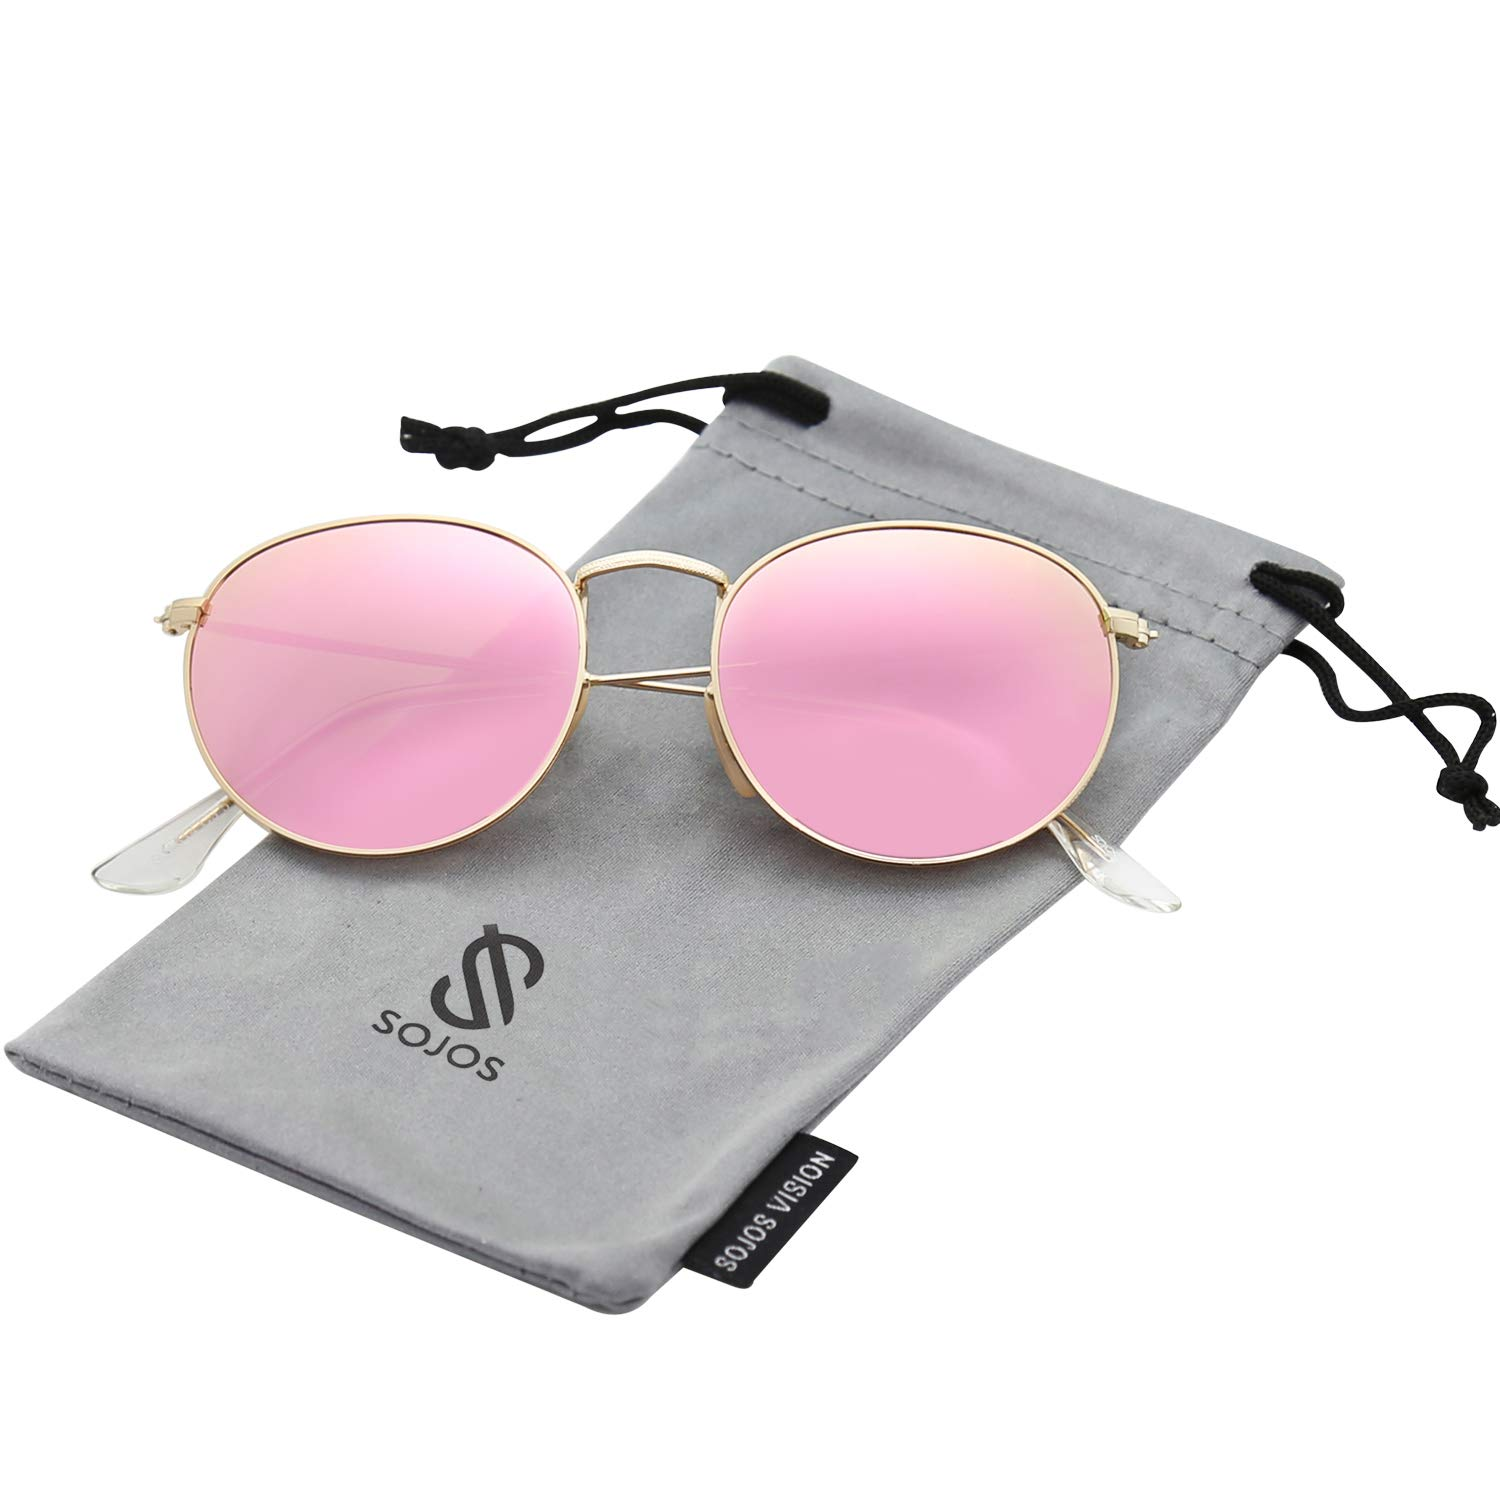 SOJOS Small Round Polarized Sunglasses Mirrored Lens Unisex Glasses SJ1014 3447 with Gold Frame/Pink Mirrored Polarized Lens by SOJOS